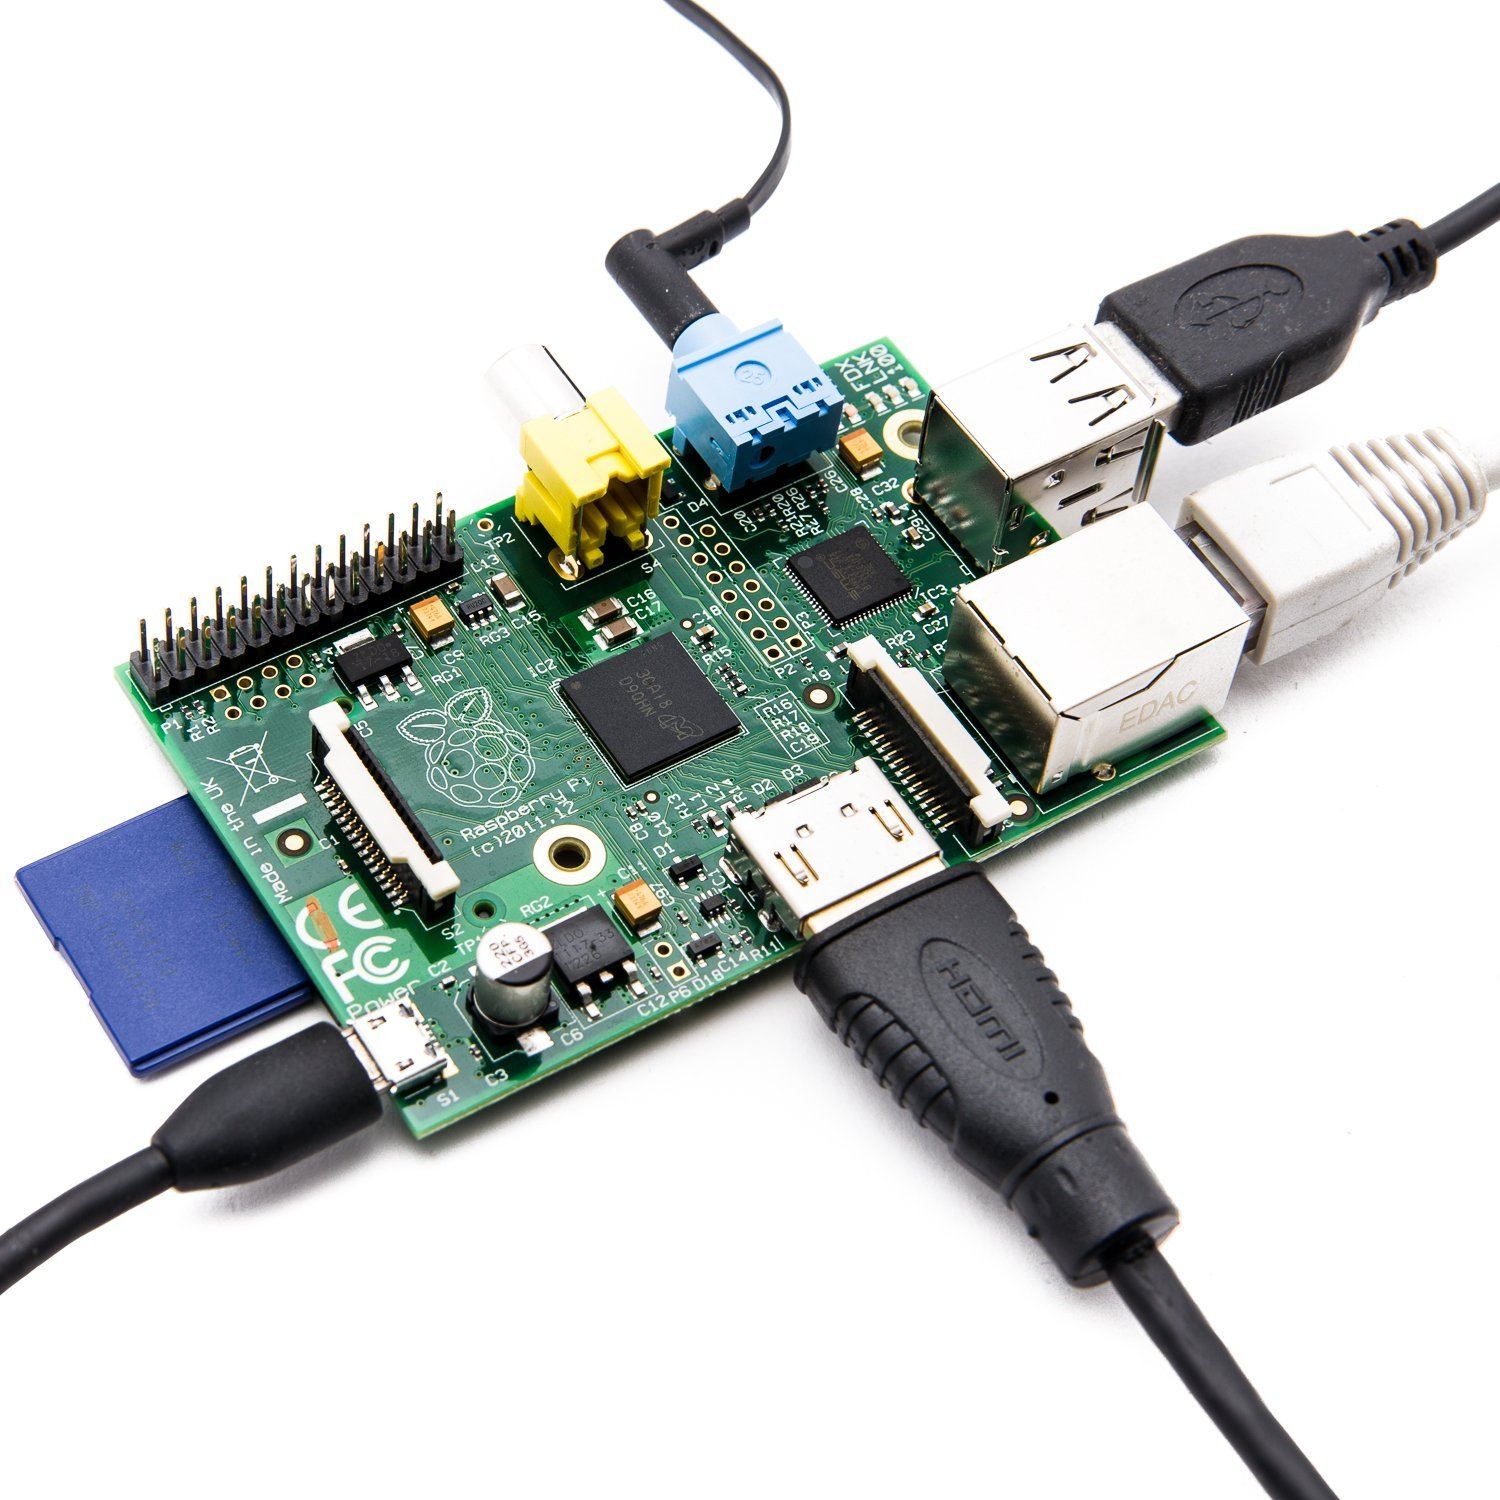 Home scan station based on Raspberry Pi – Artem